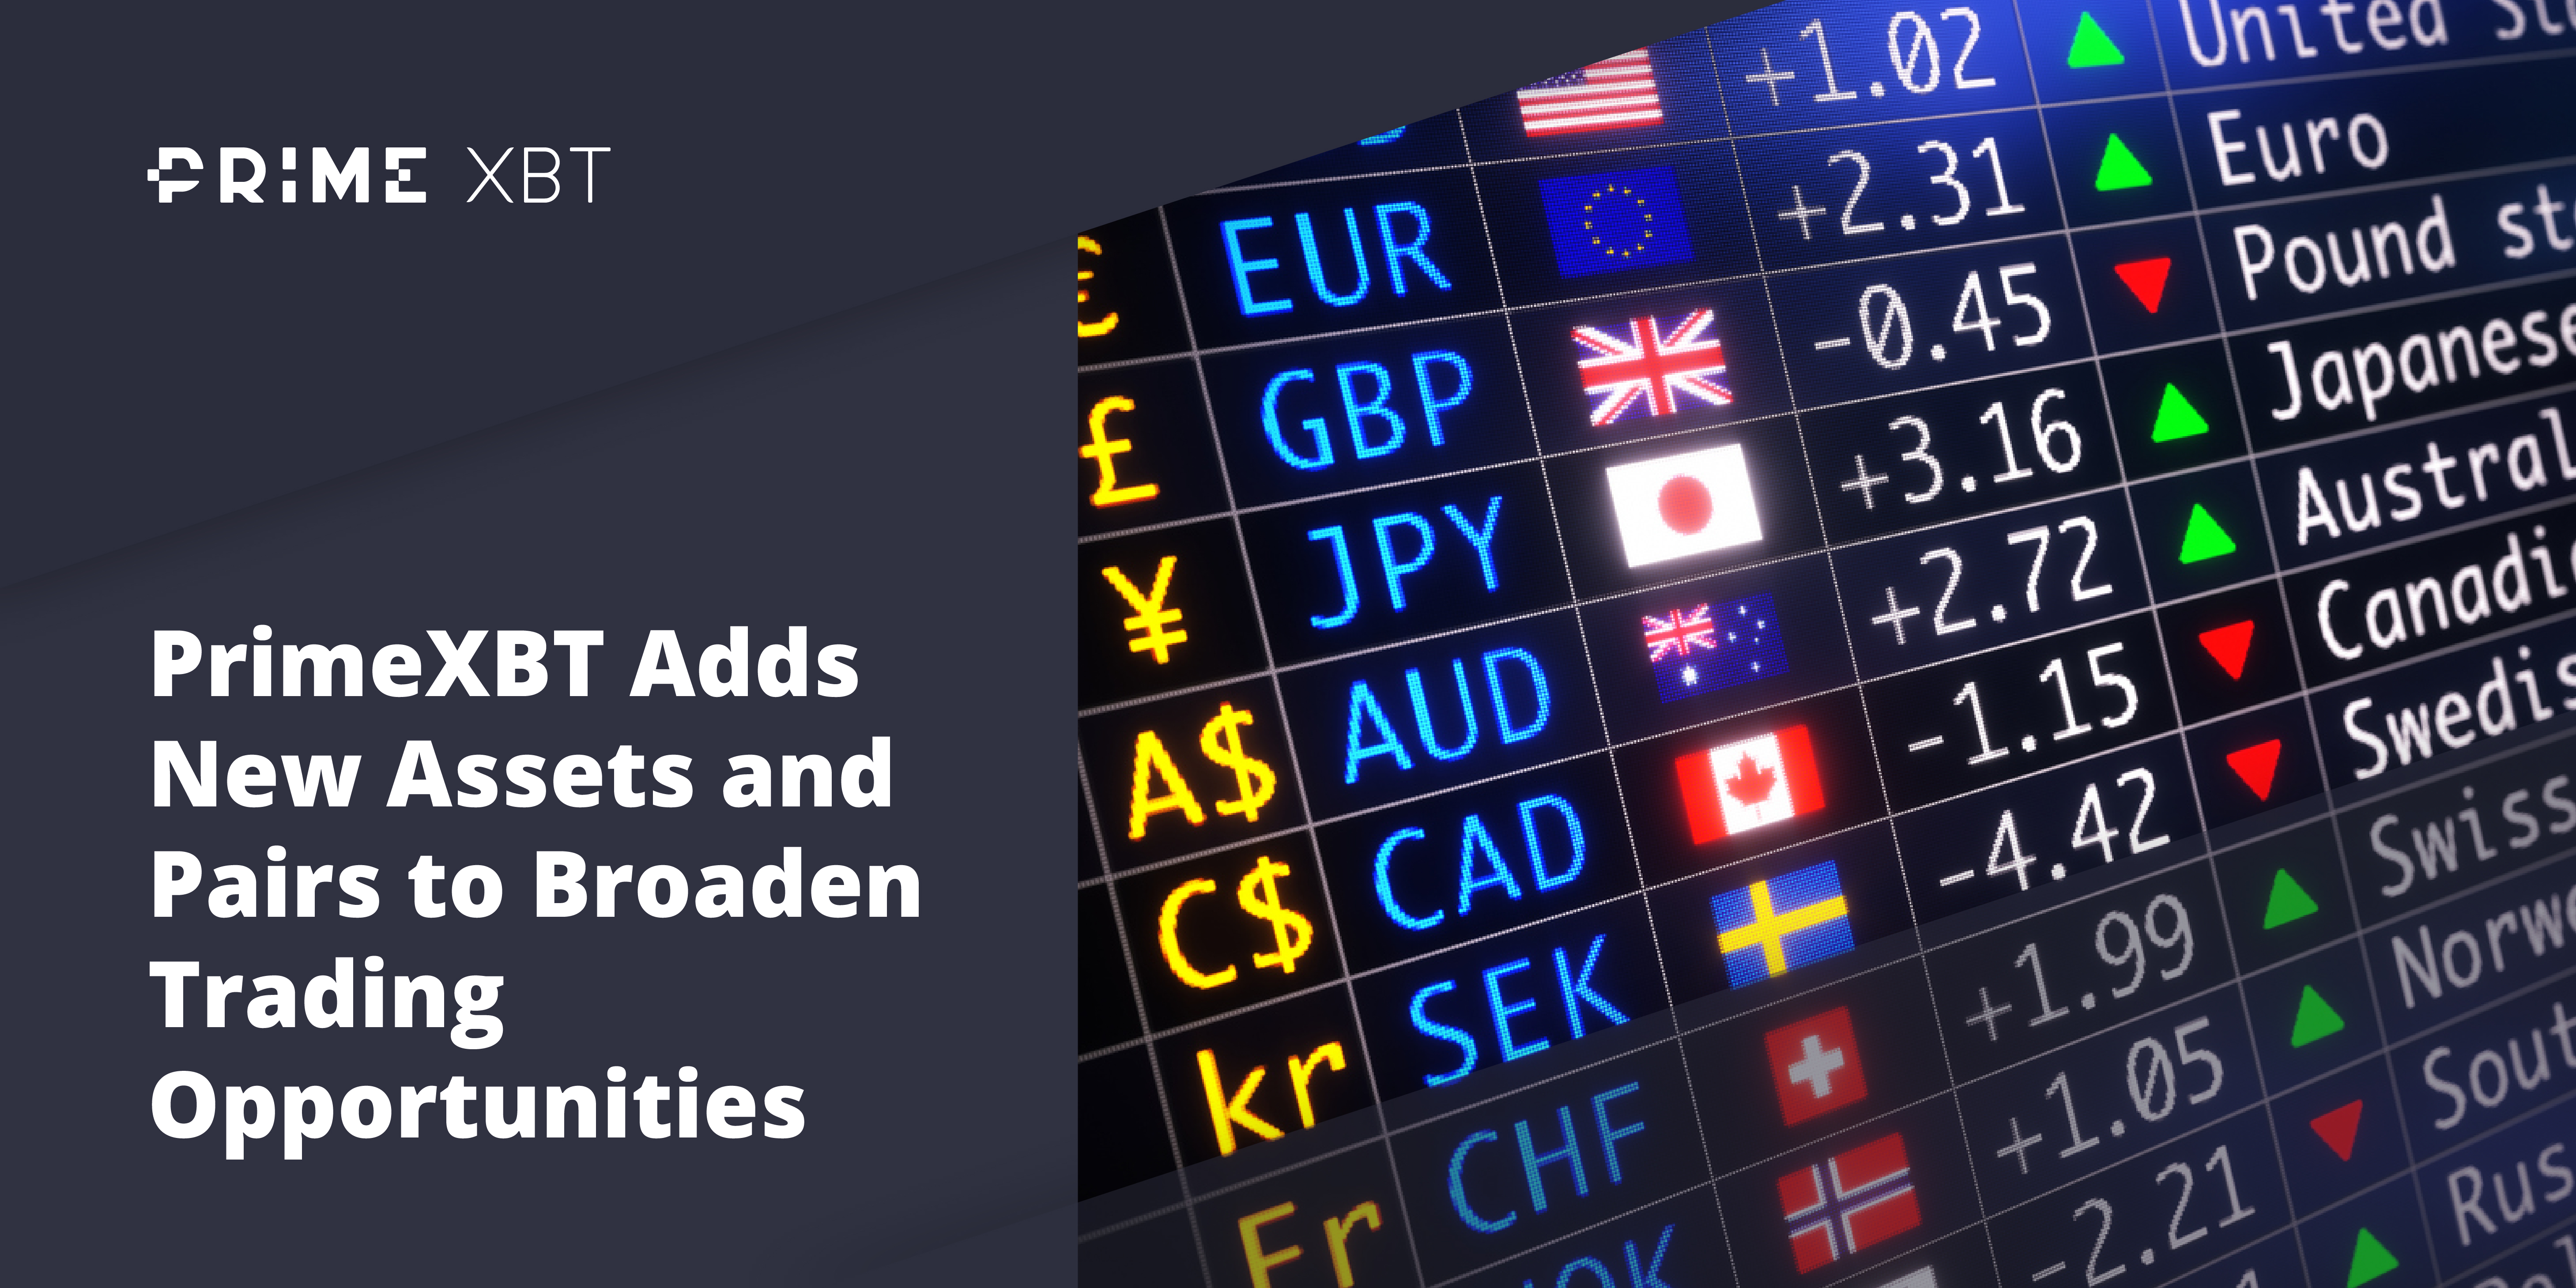 PrimeXBT Adds New Foreign Exchange Assets and Pairs to Broaden Trading Opportunities - 09.07.20 assets 2 kopija